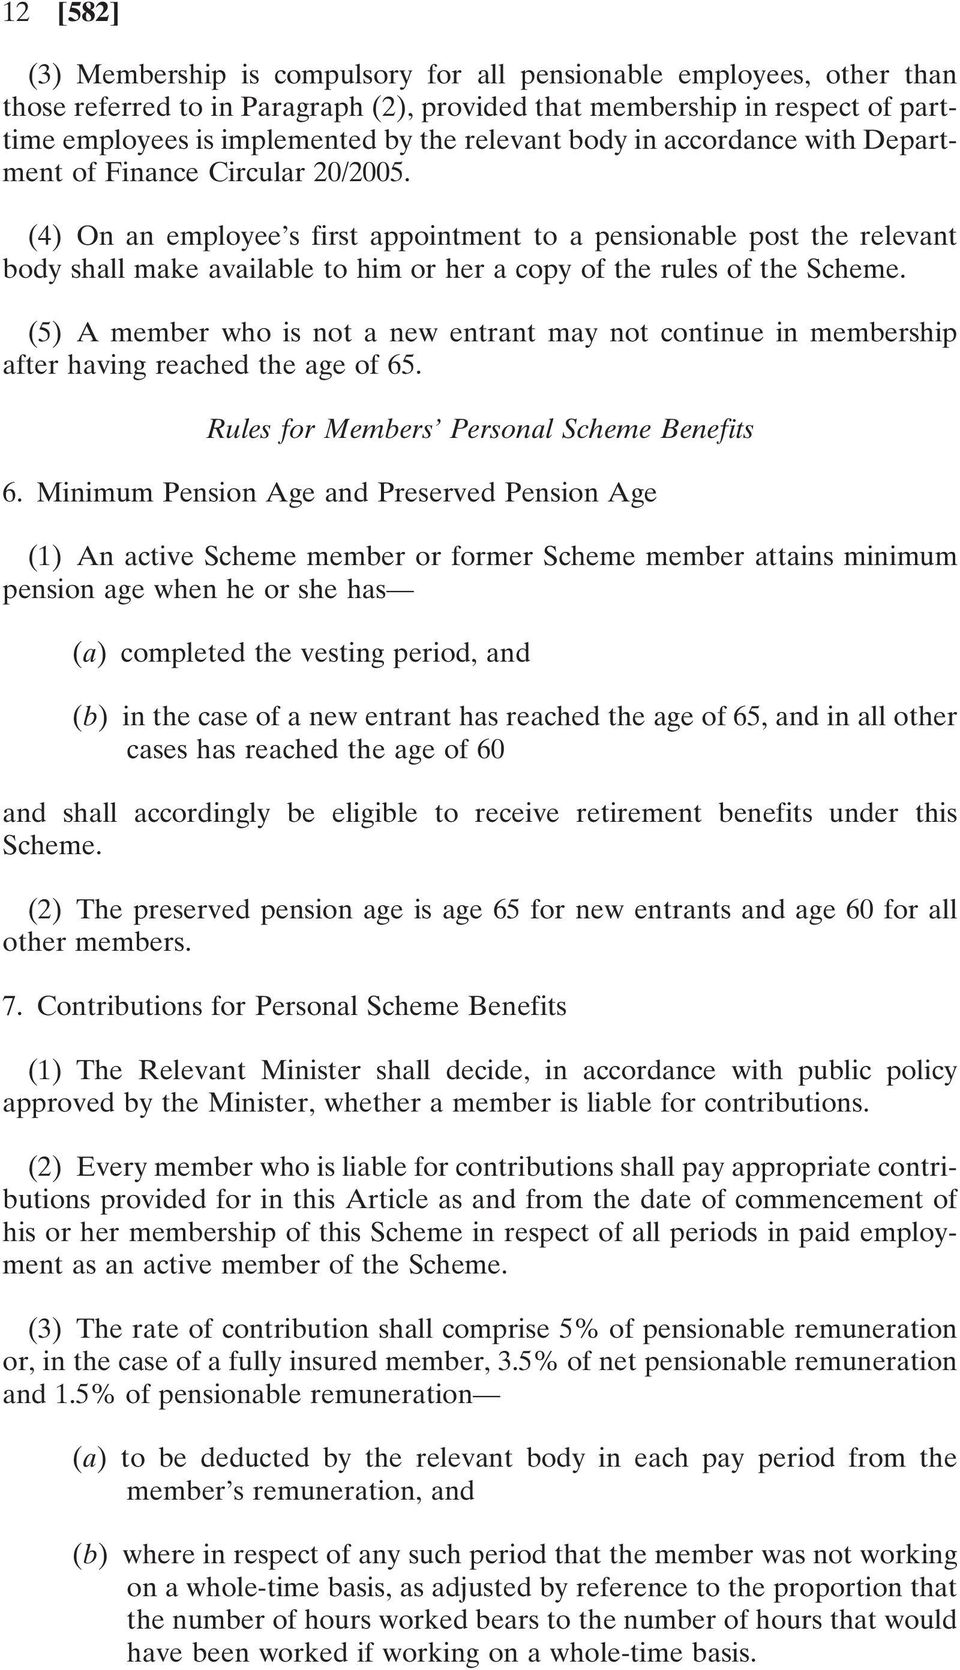 (4) On an employee s first appointment to a pensionable post the relevant body shall make available to him or her a copy of the rules of the Scheme.